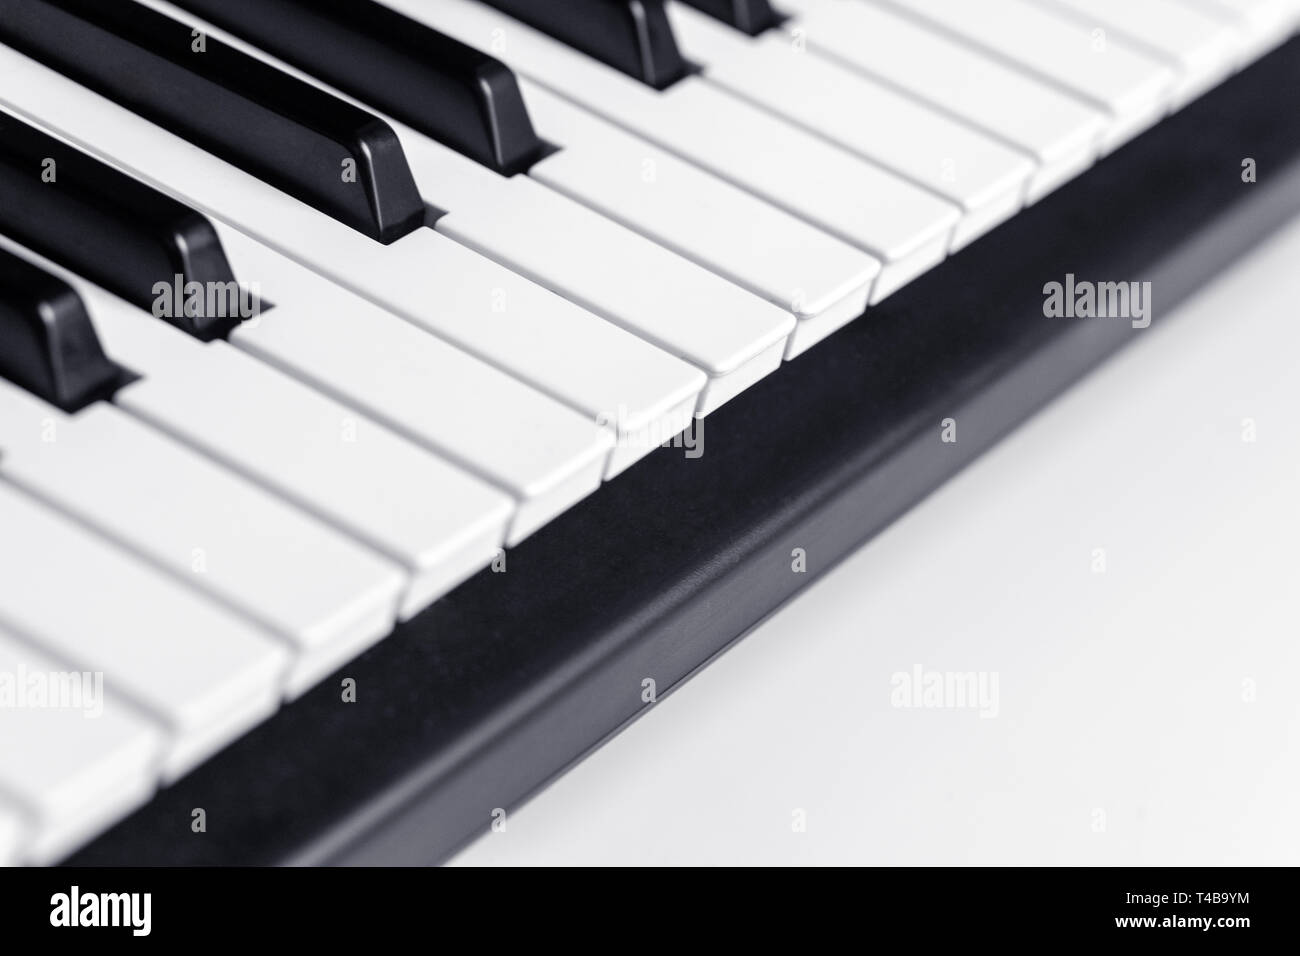 Synthesizer Keyboard Stock Photos & Synthesizer Keyboard